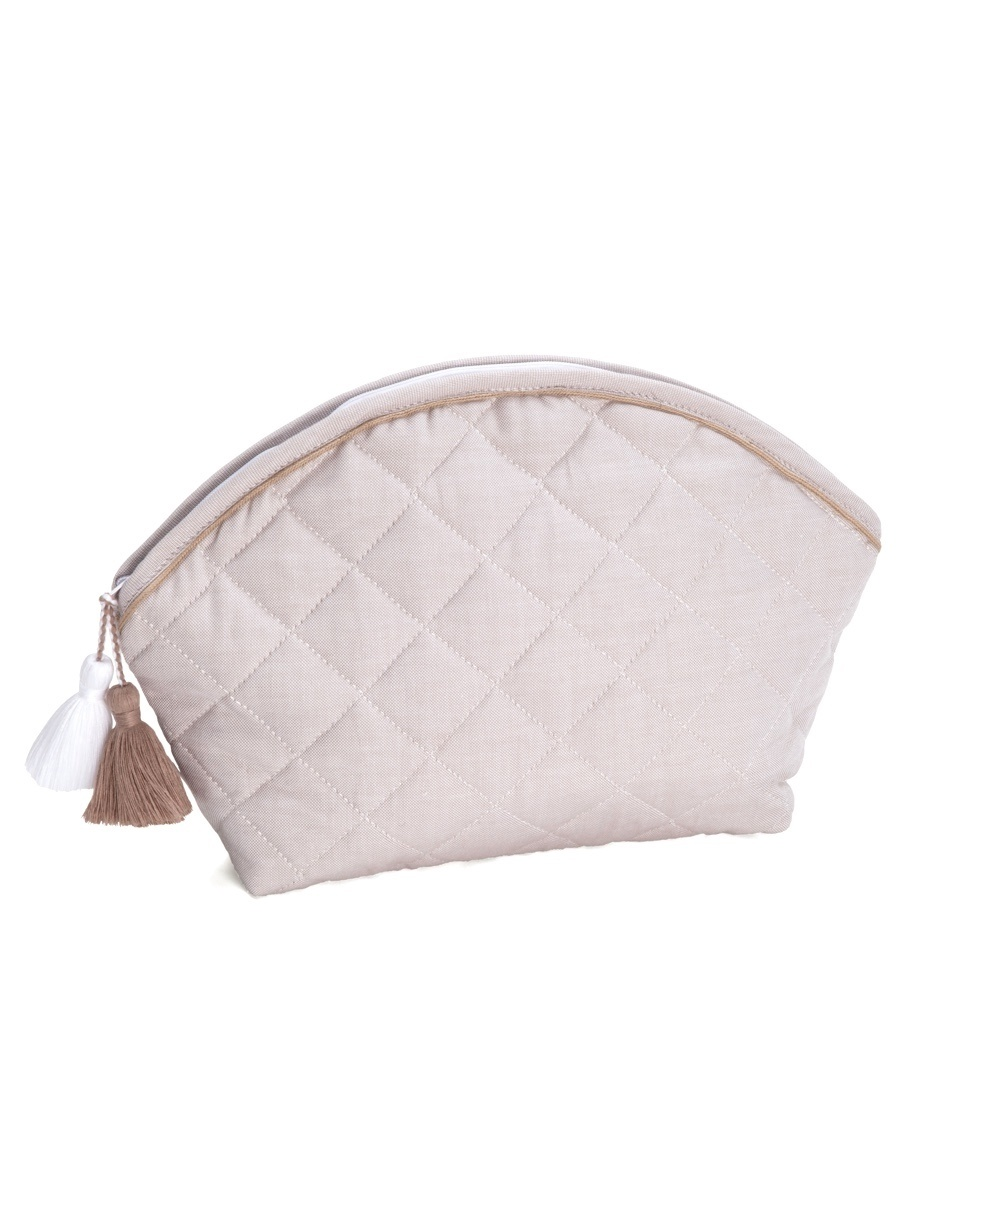 Toiletry bag Oxford Taupe-1